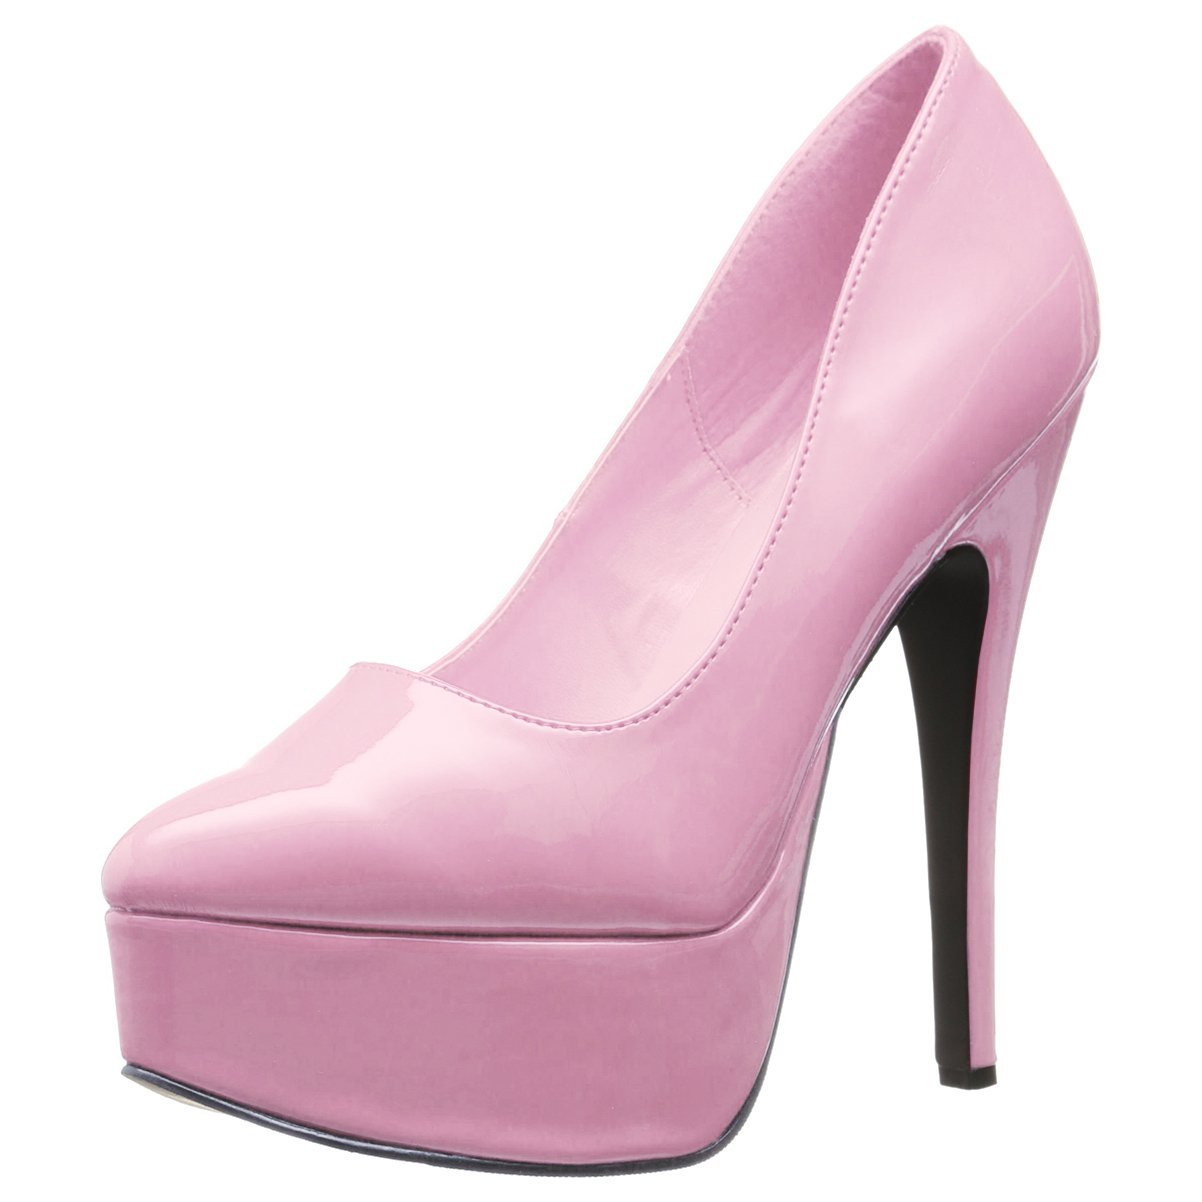 Summitfashions Womens 6.5 Inch Stiletto Pointed Toe Platform Pumps Shoes Pink